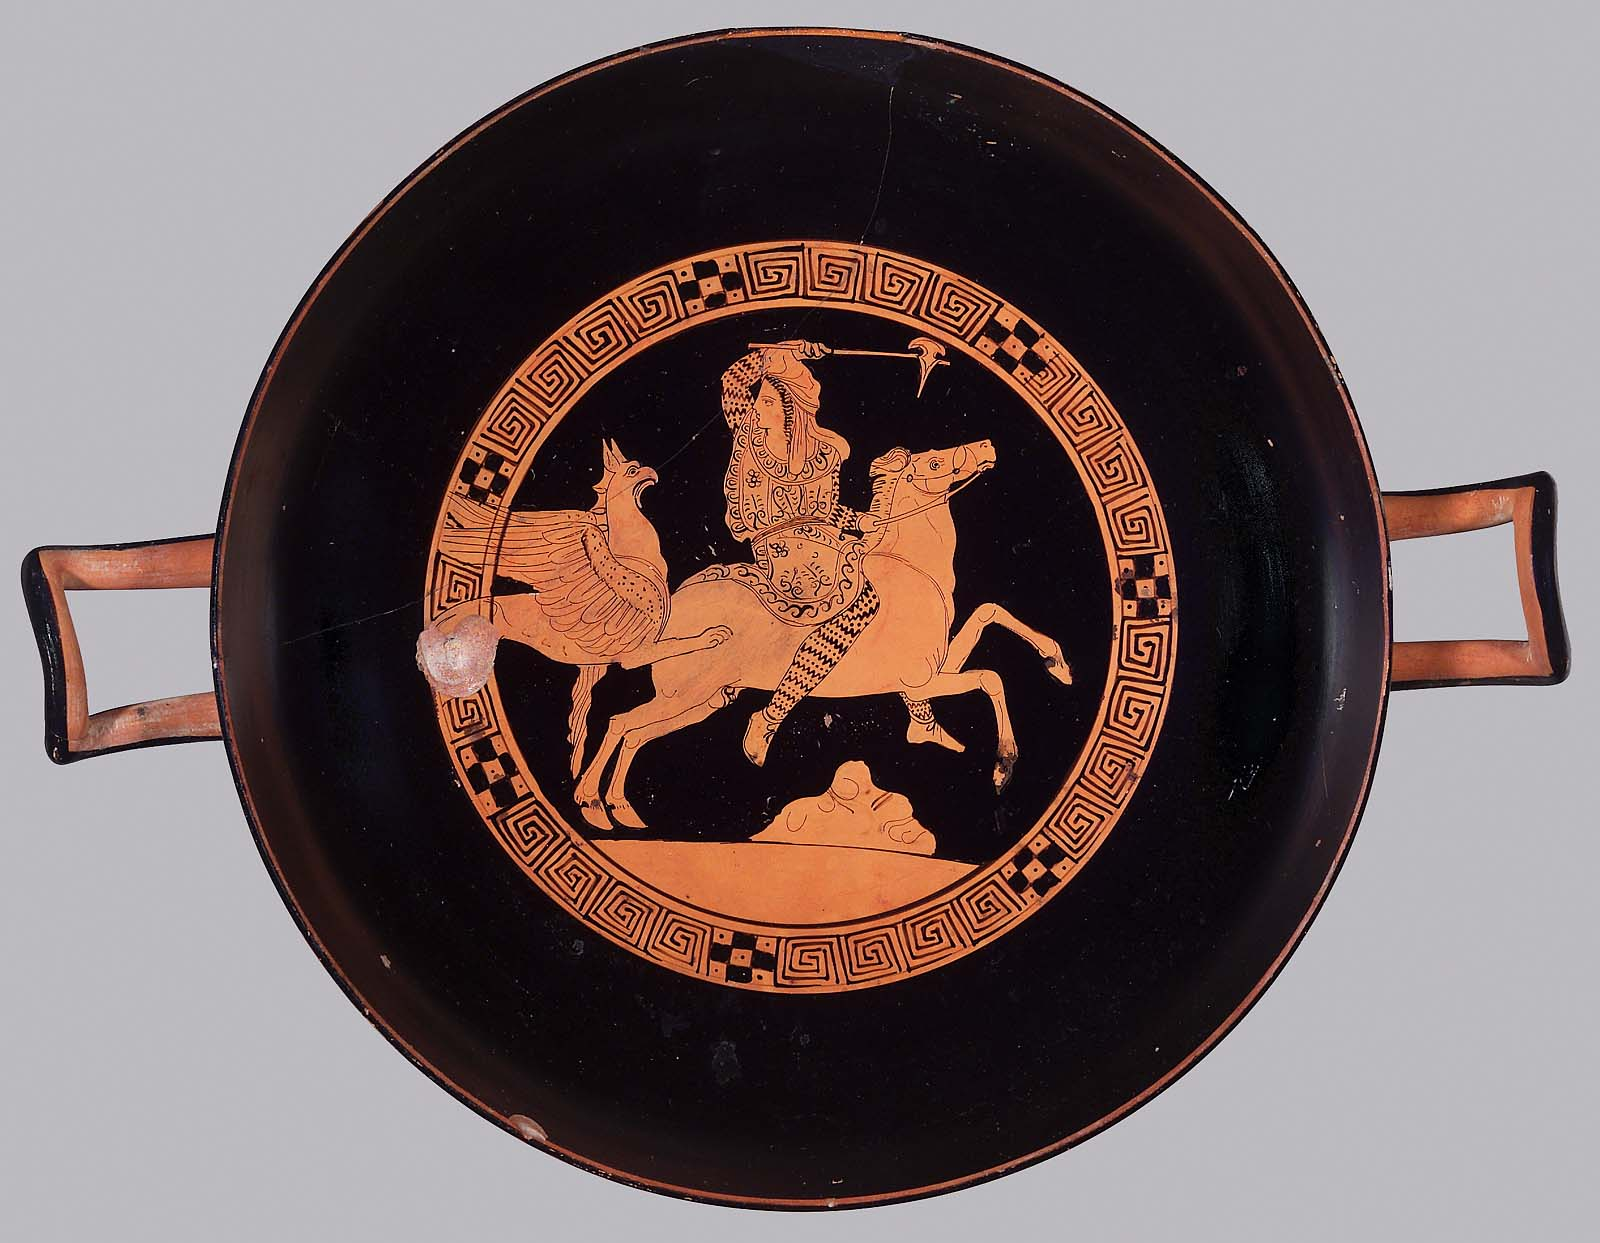 kylix about 4th century B.C. Athens